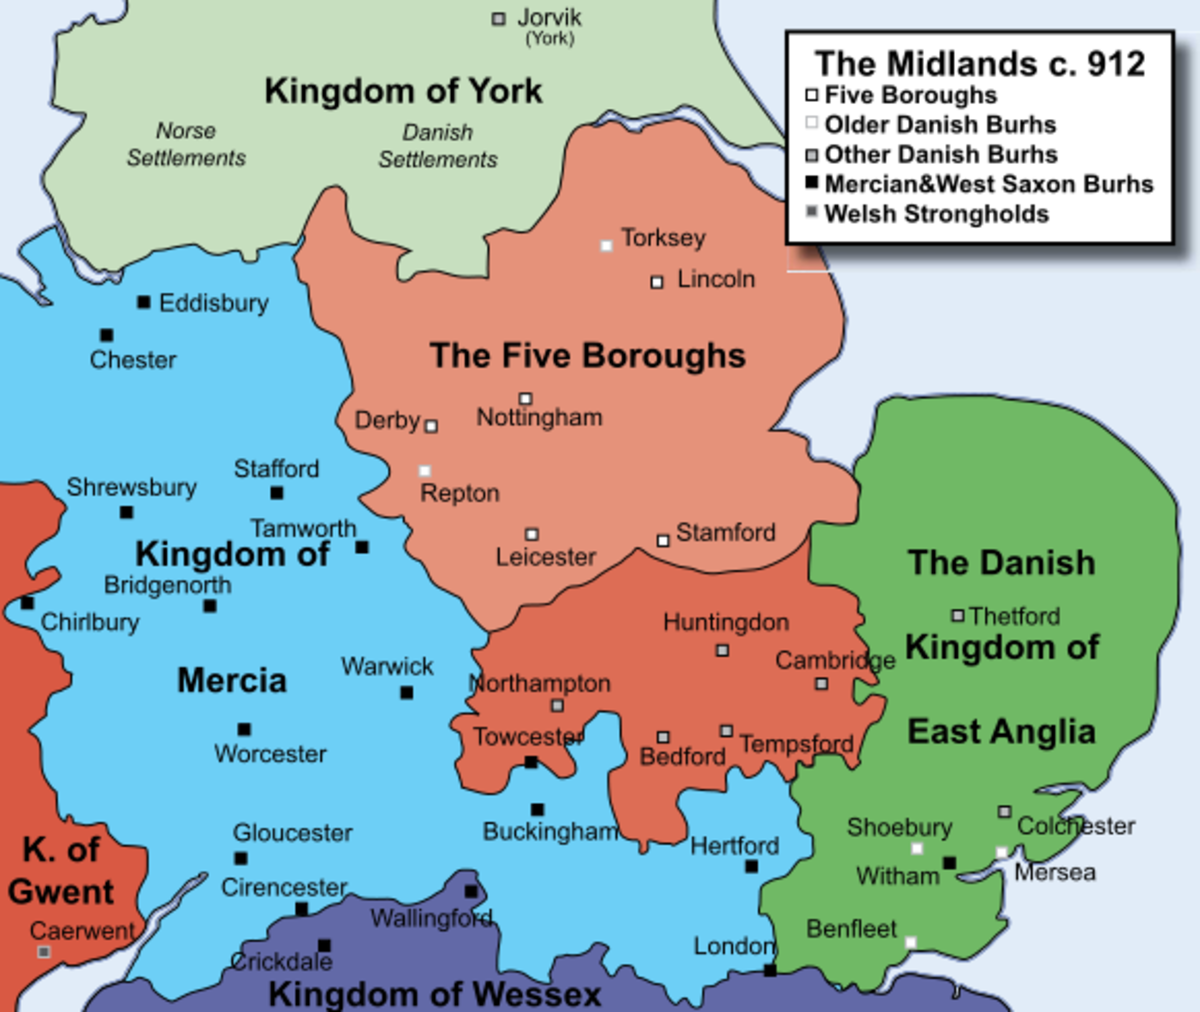 Map of the Midlands circa 912AD.